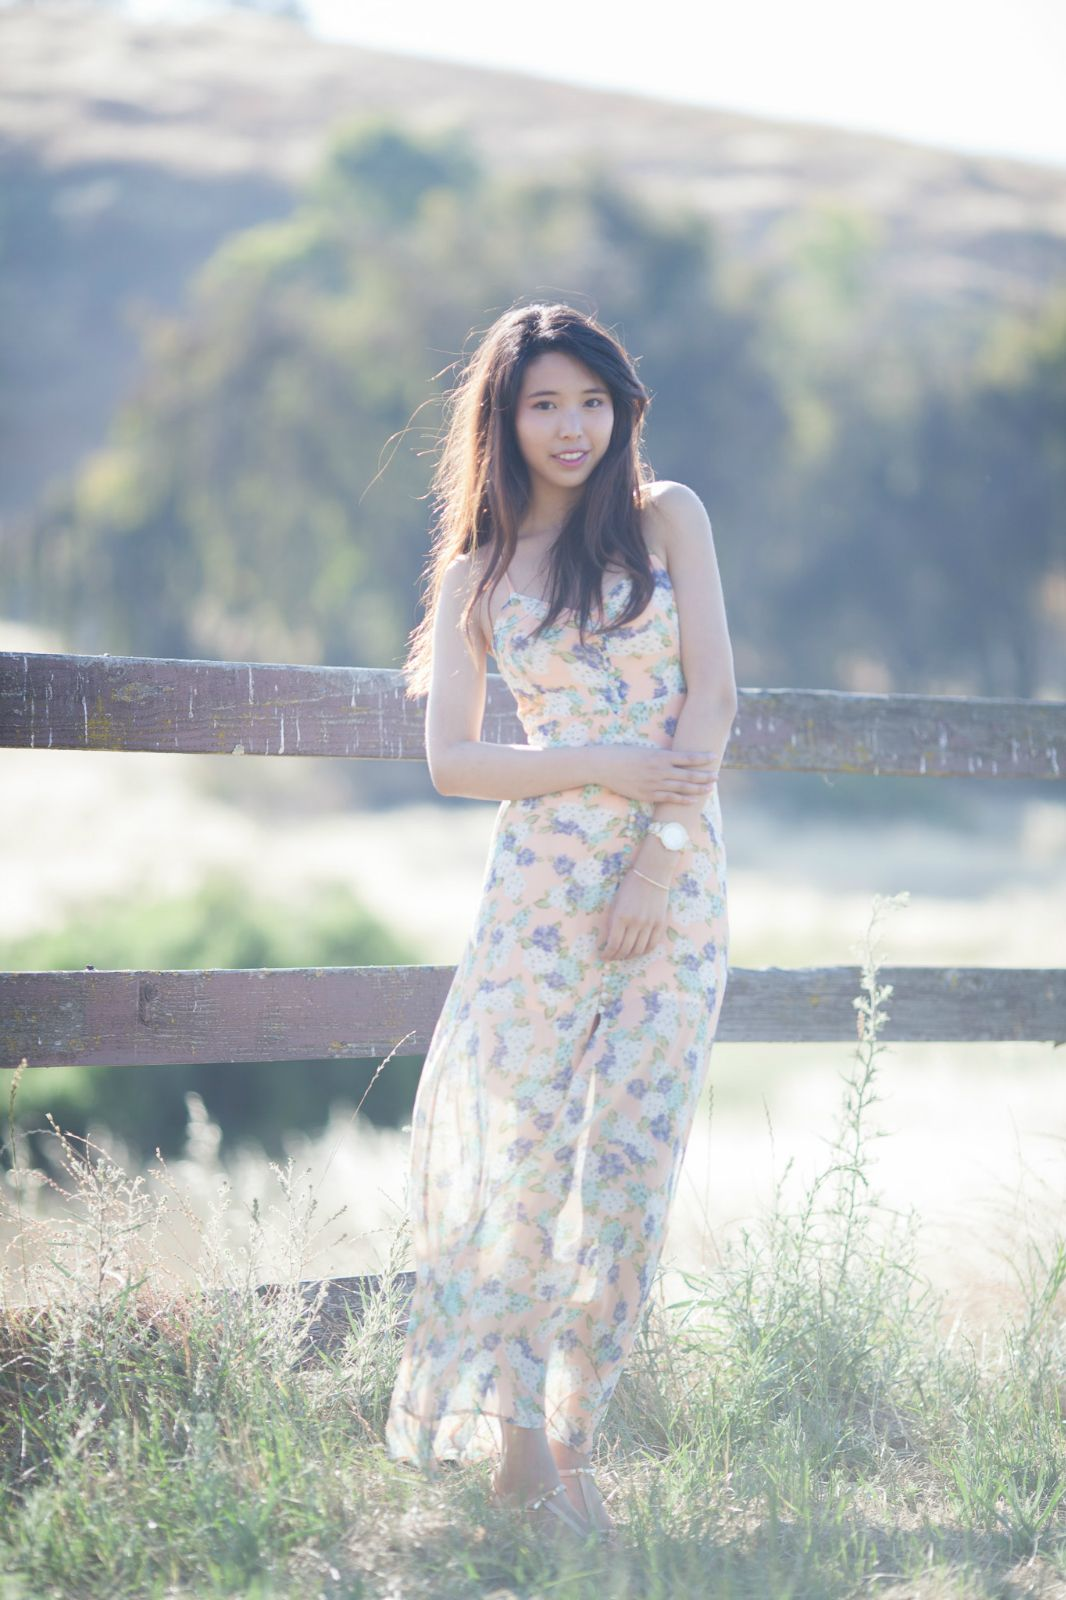 d9d4a2730c ally gong asian girl model ed tran photography fields country beautiful  natural ally gong